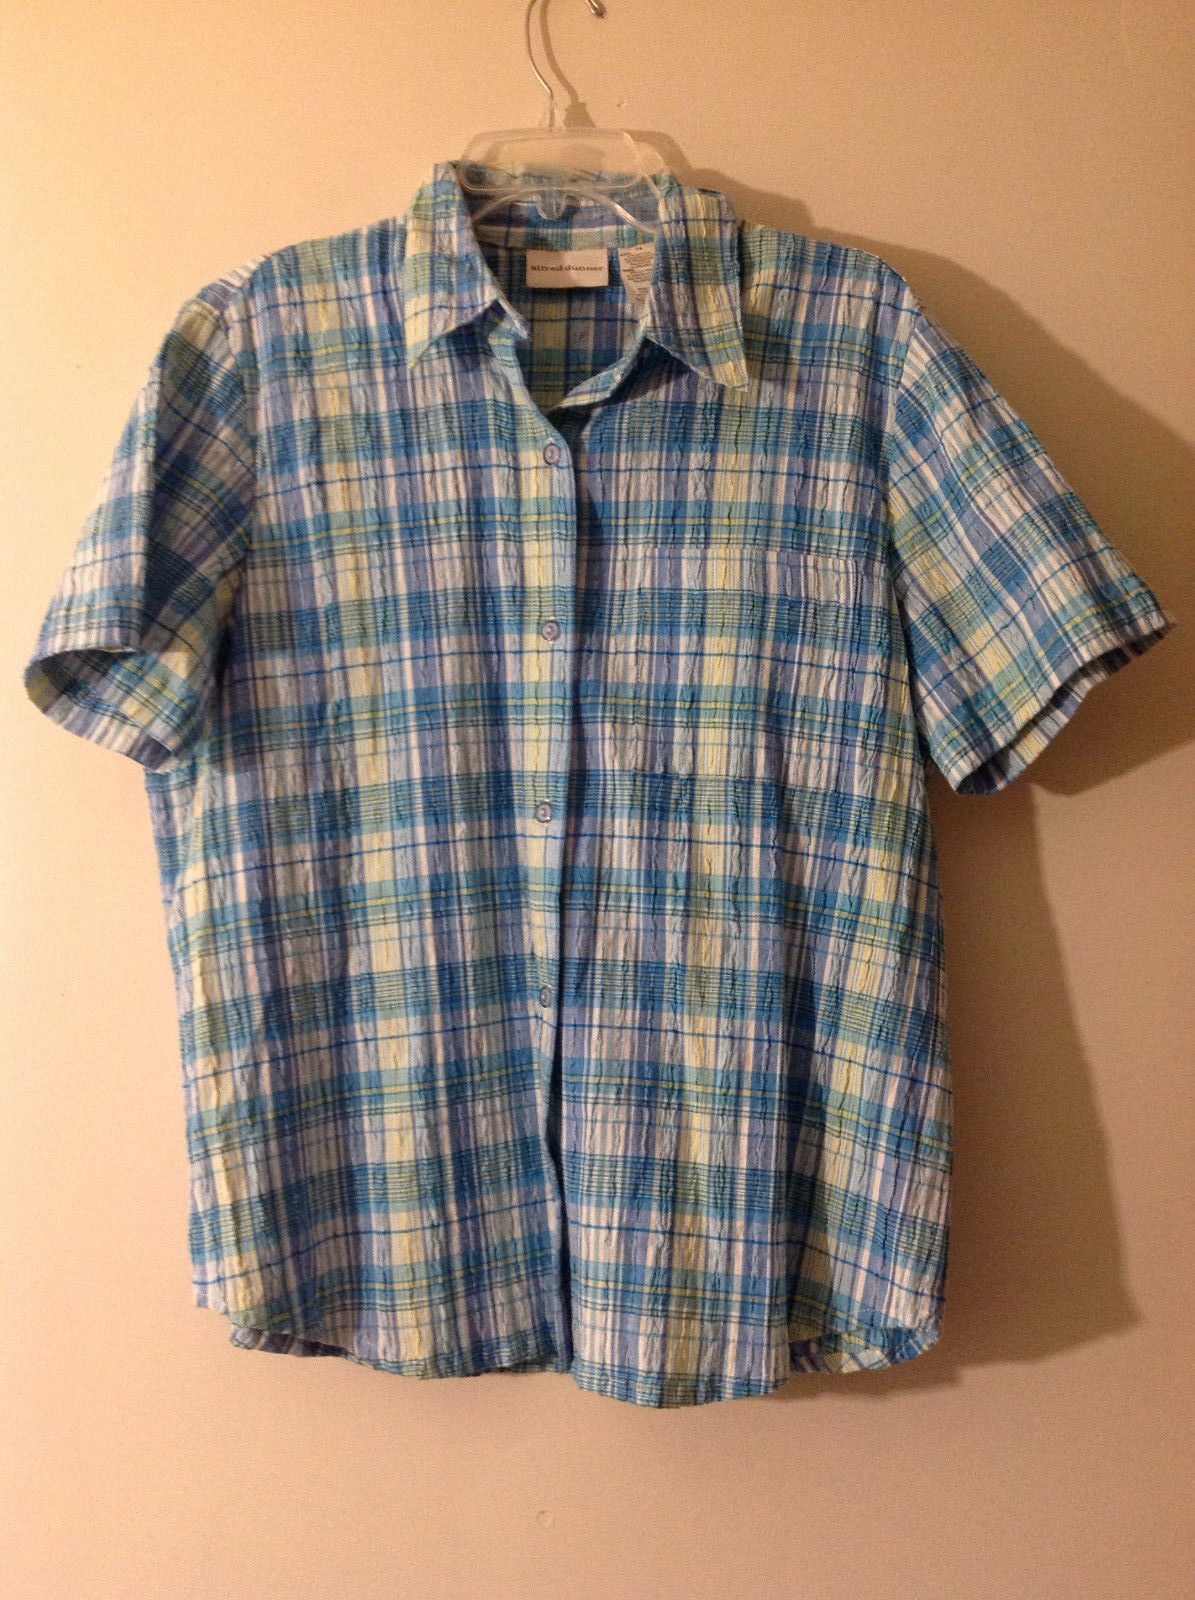 Alfred Dunner Women's Size 14 Button Down Shirt in Blue Yellow White Plaid Crepe